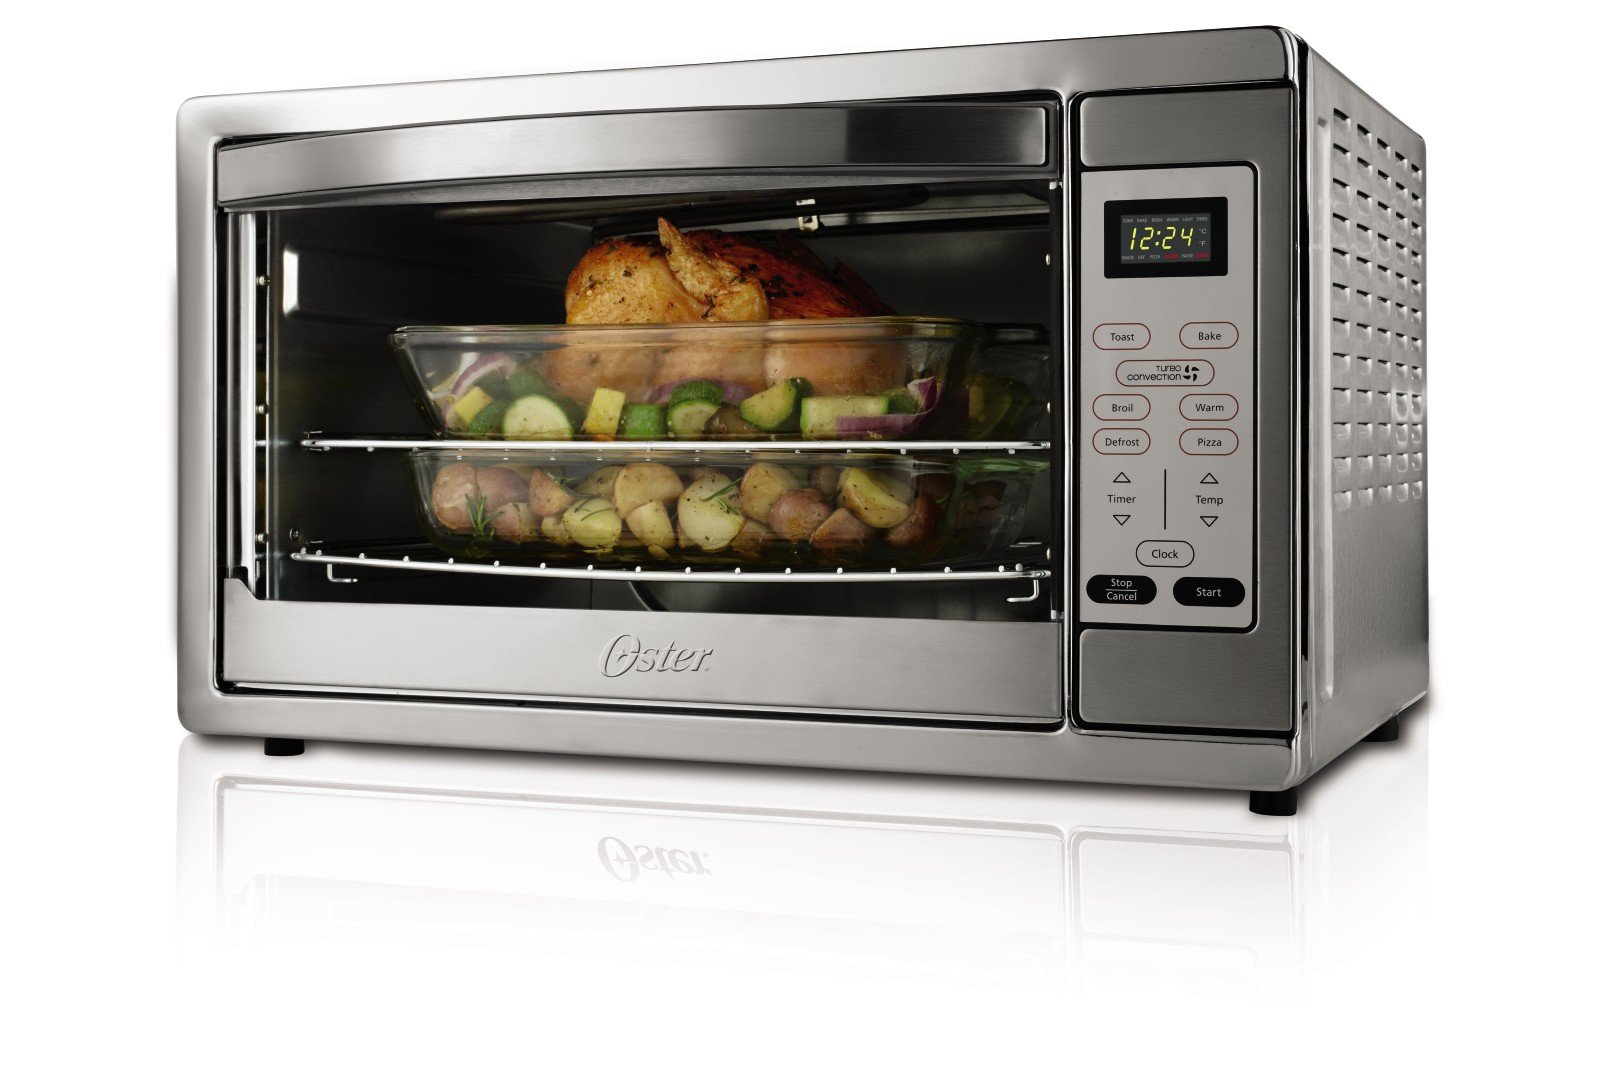 Cheap Food Network Countertop Convection Oven Find Food Network Countertop Convection Oven Deals On Line At Alibaba Com